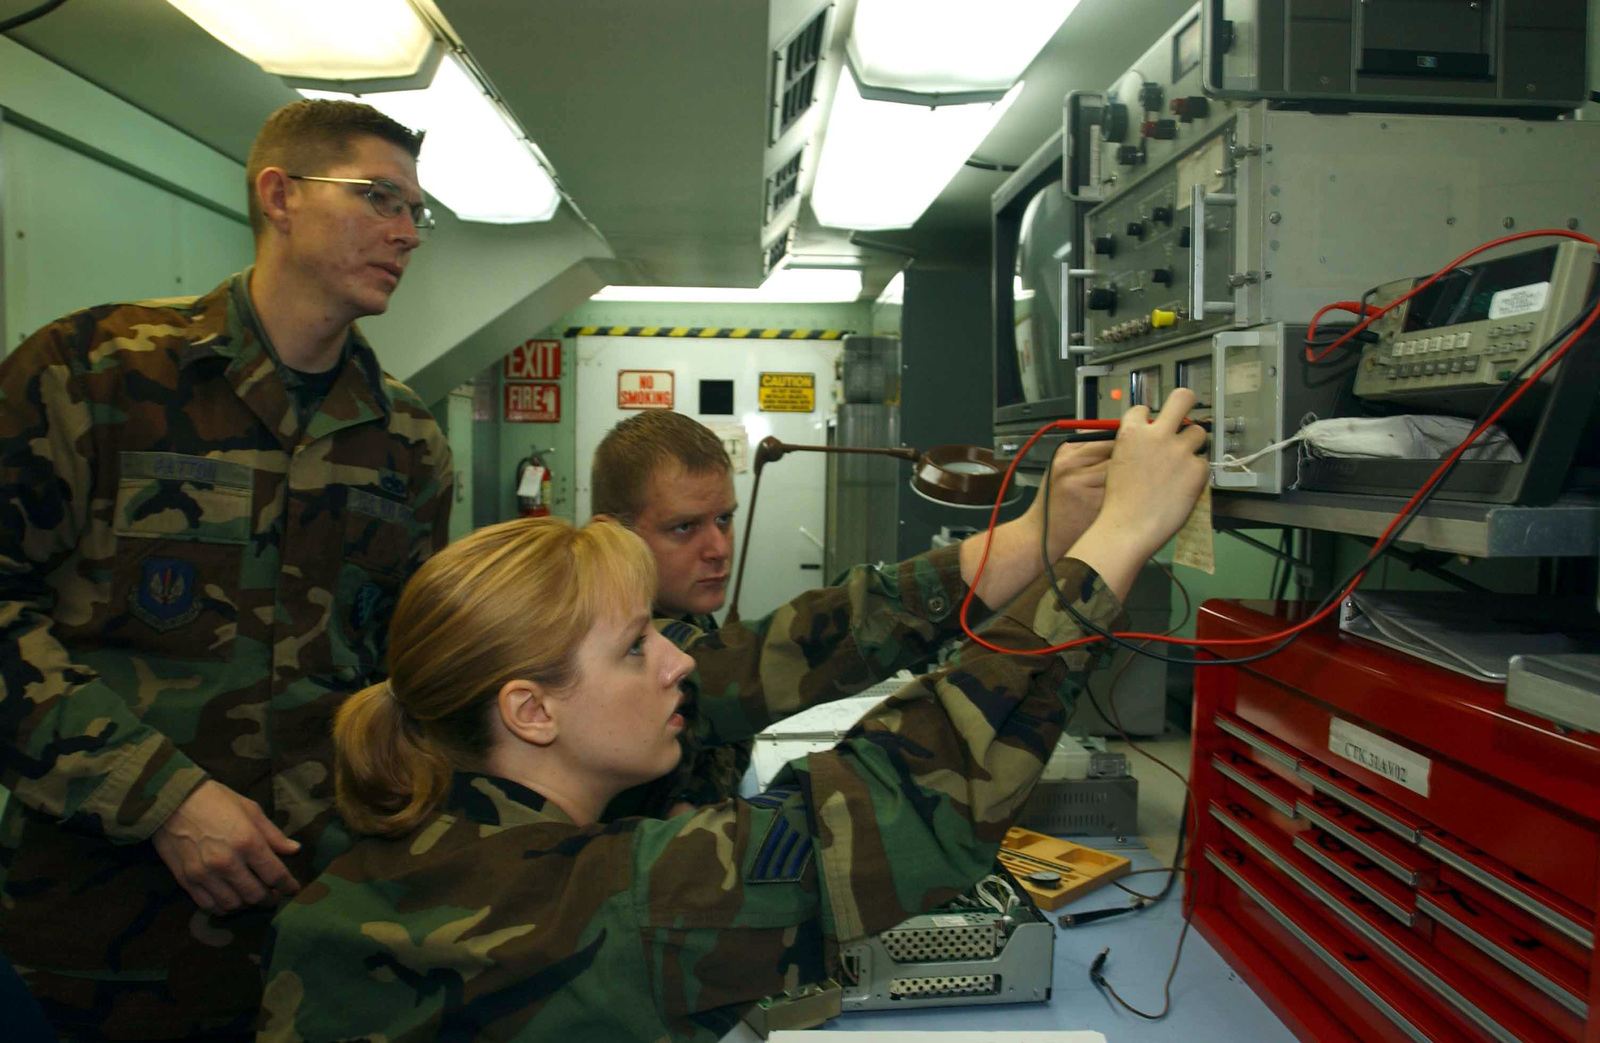 While US Air Force (USAF) STAFF Sergeant (SSGT) Jason Patton looks on, SENIOR AIRMAN (SRA) Jennifer Dear and SENIOR AIRMAN (SRA) John Mackstroth, Avionic Sensor Technicians and members of the 31st Maintenance Squadron (MS) try to stabilize power fluctuations as they perform scheduled maintenance on an Improved Airborne Tape Recorder (EVO-520 IATR)